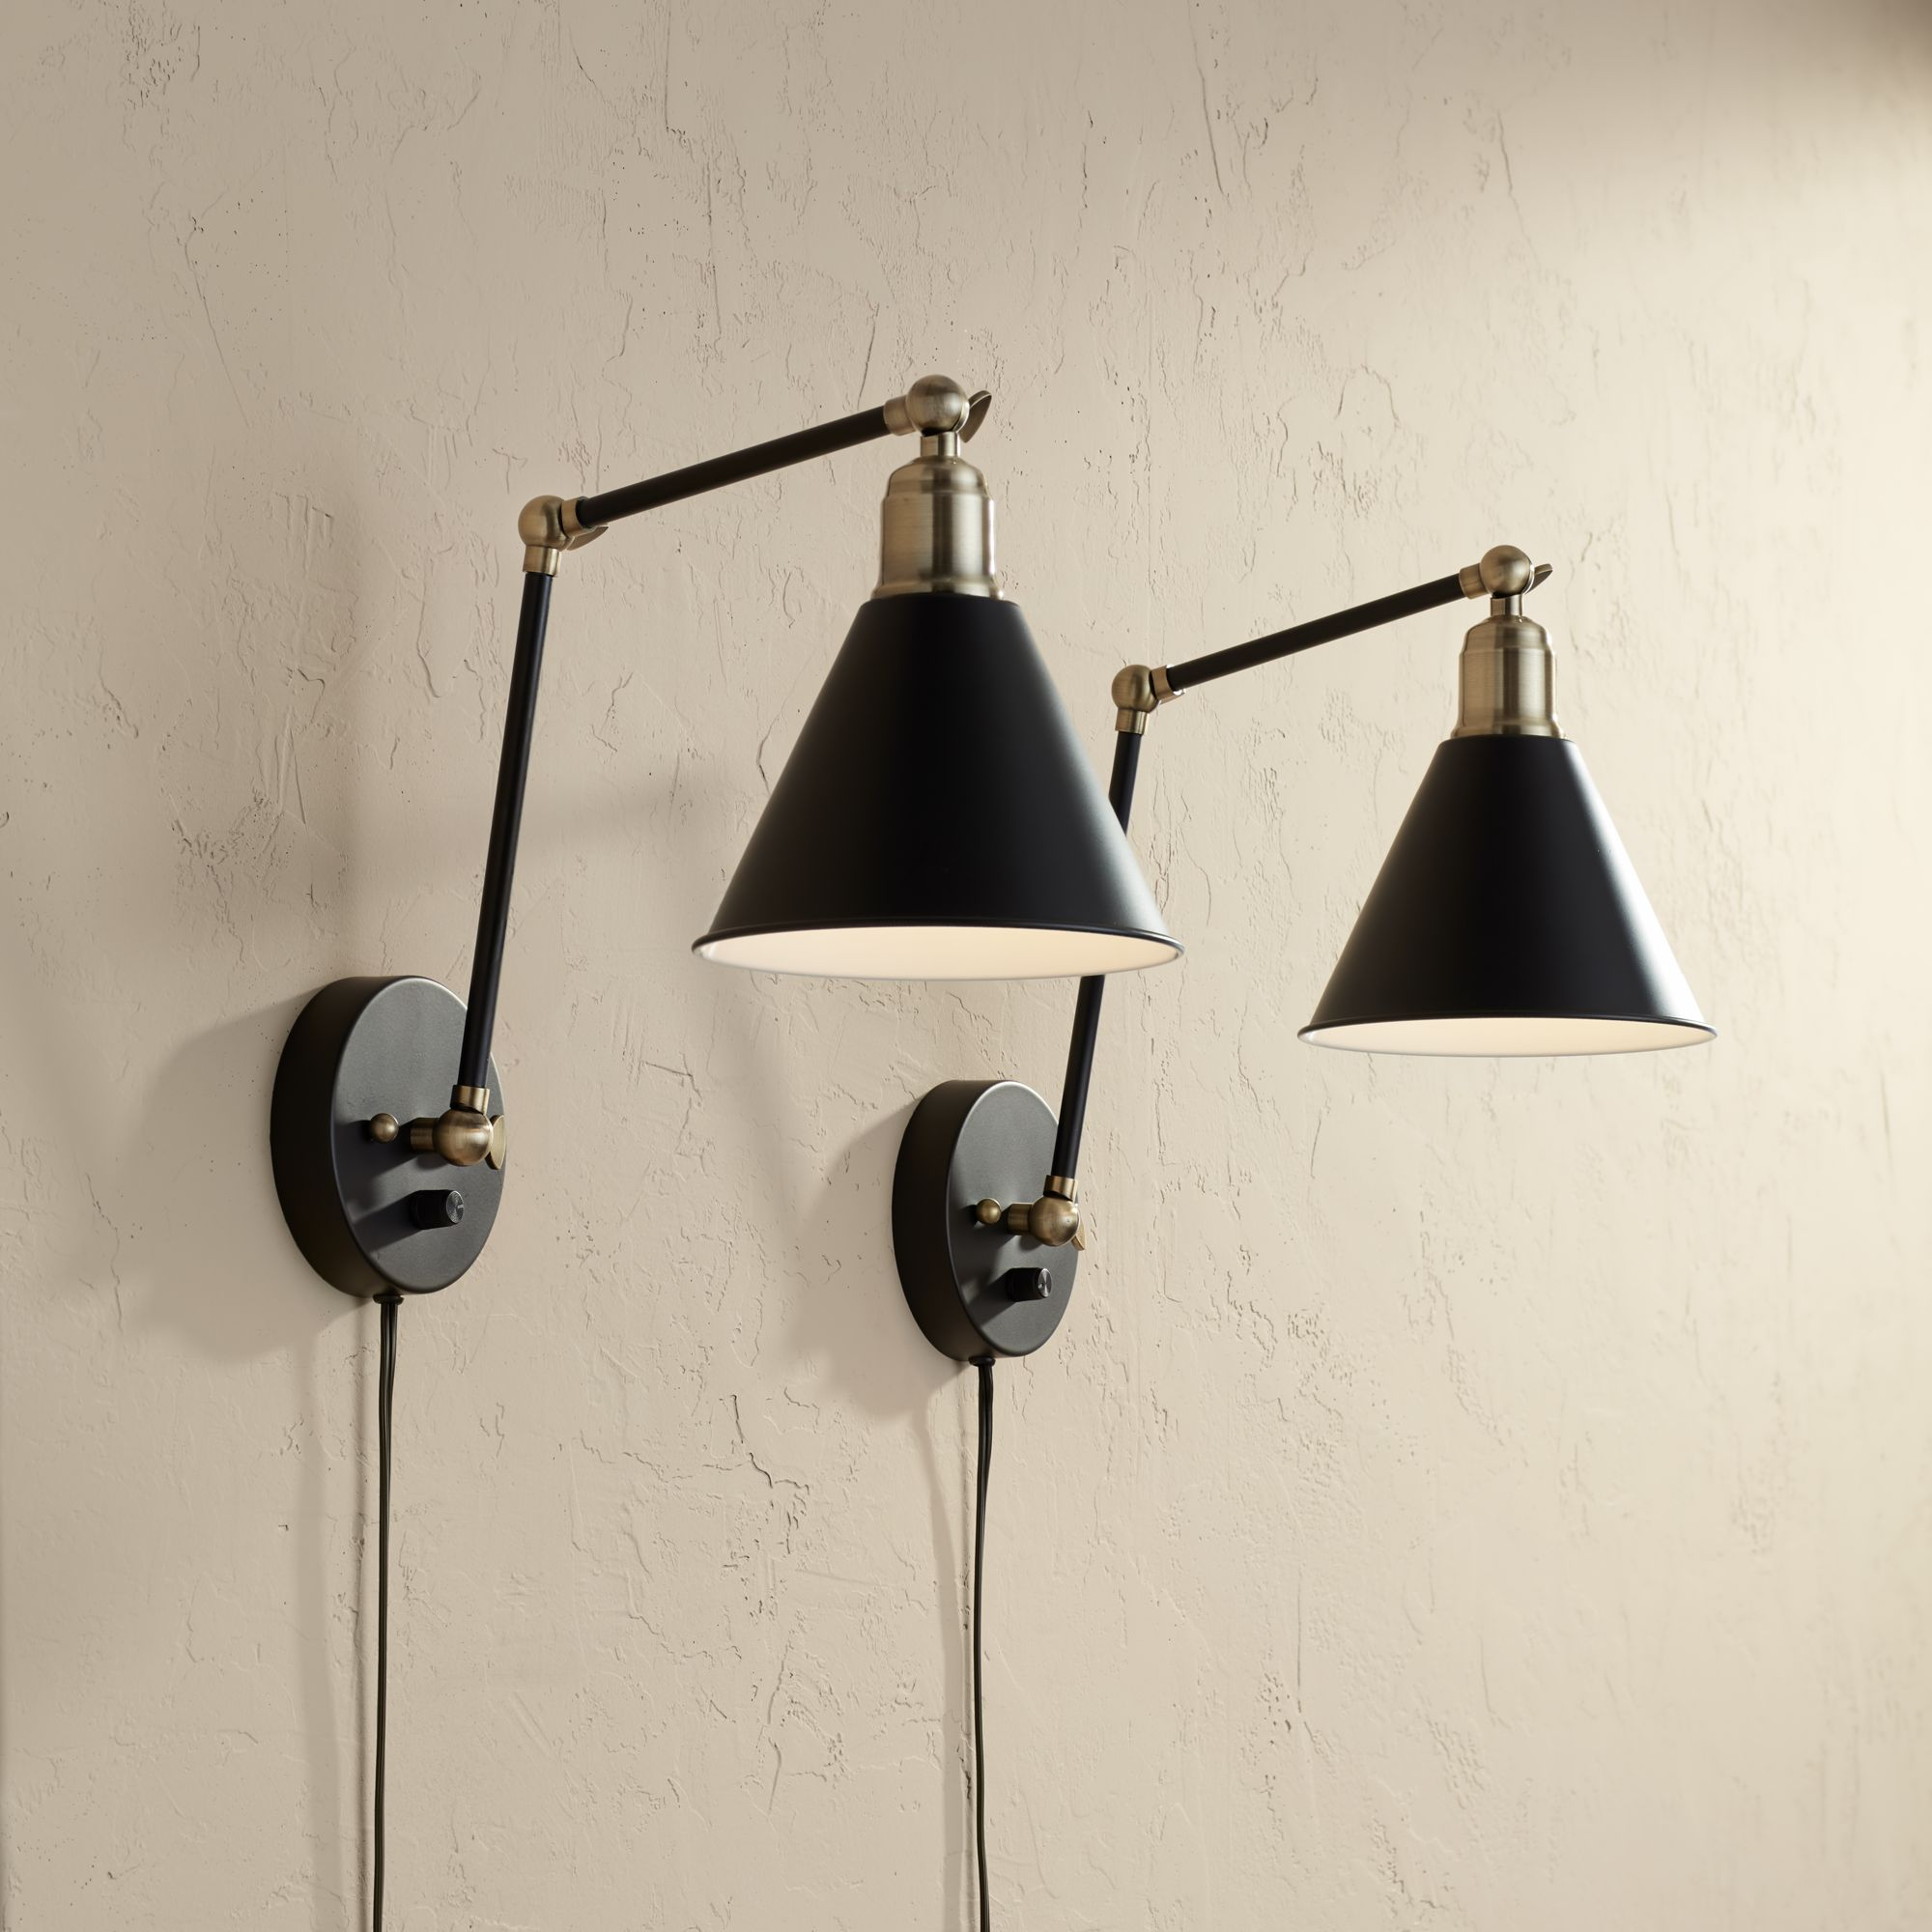 360 Lighting Modern Wall Lamp Plug In